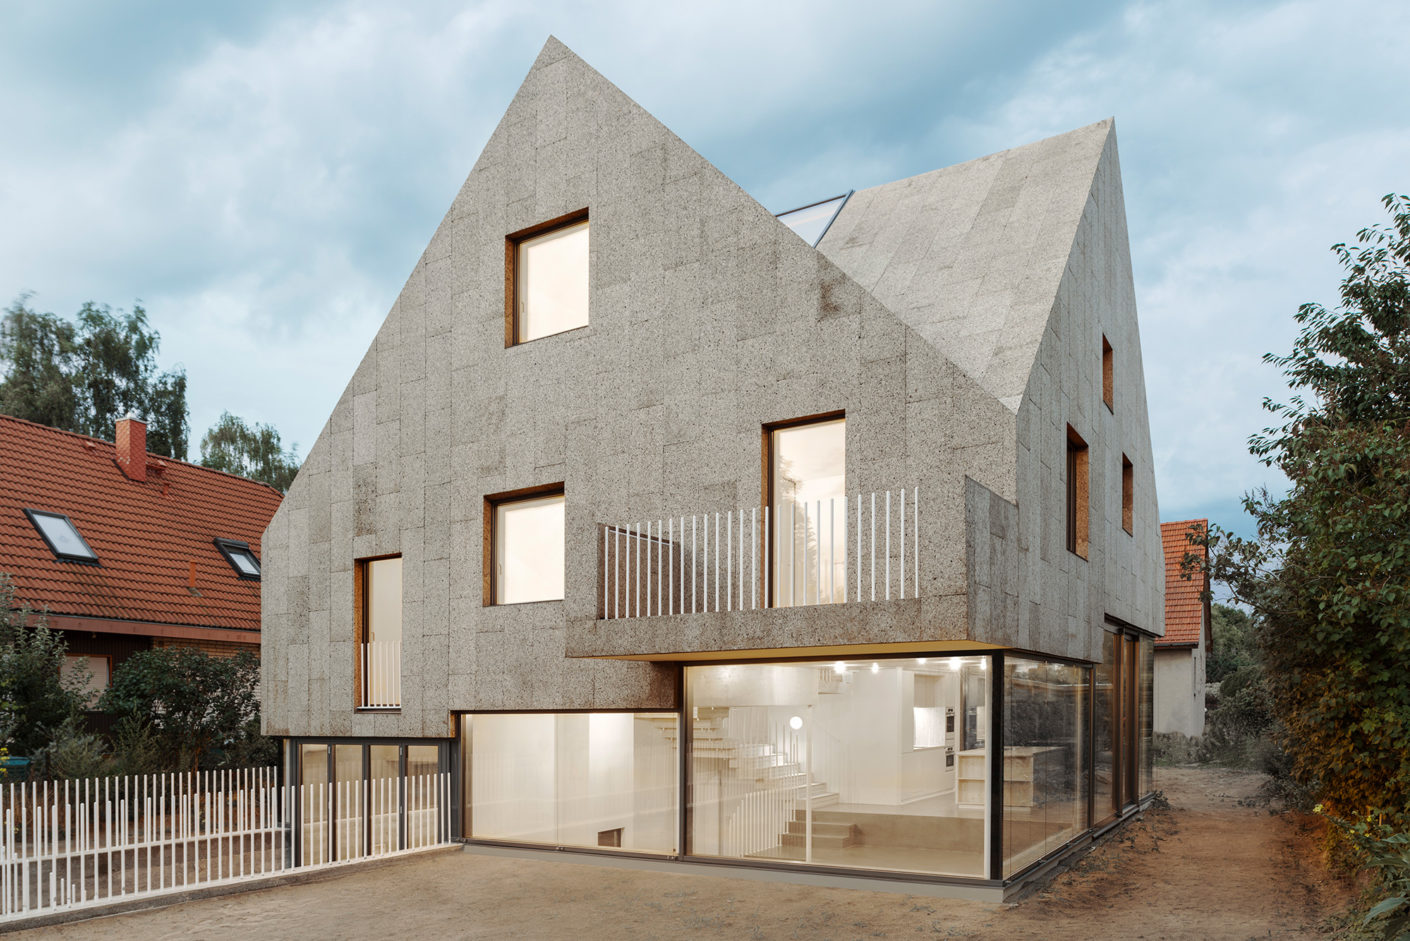 Cork Screw House, family house with cork facade, Berlin-Staaken